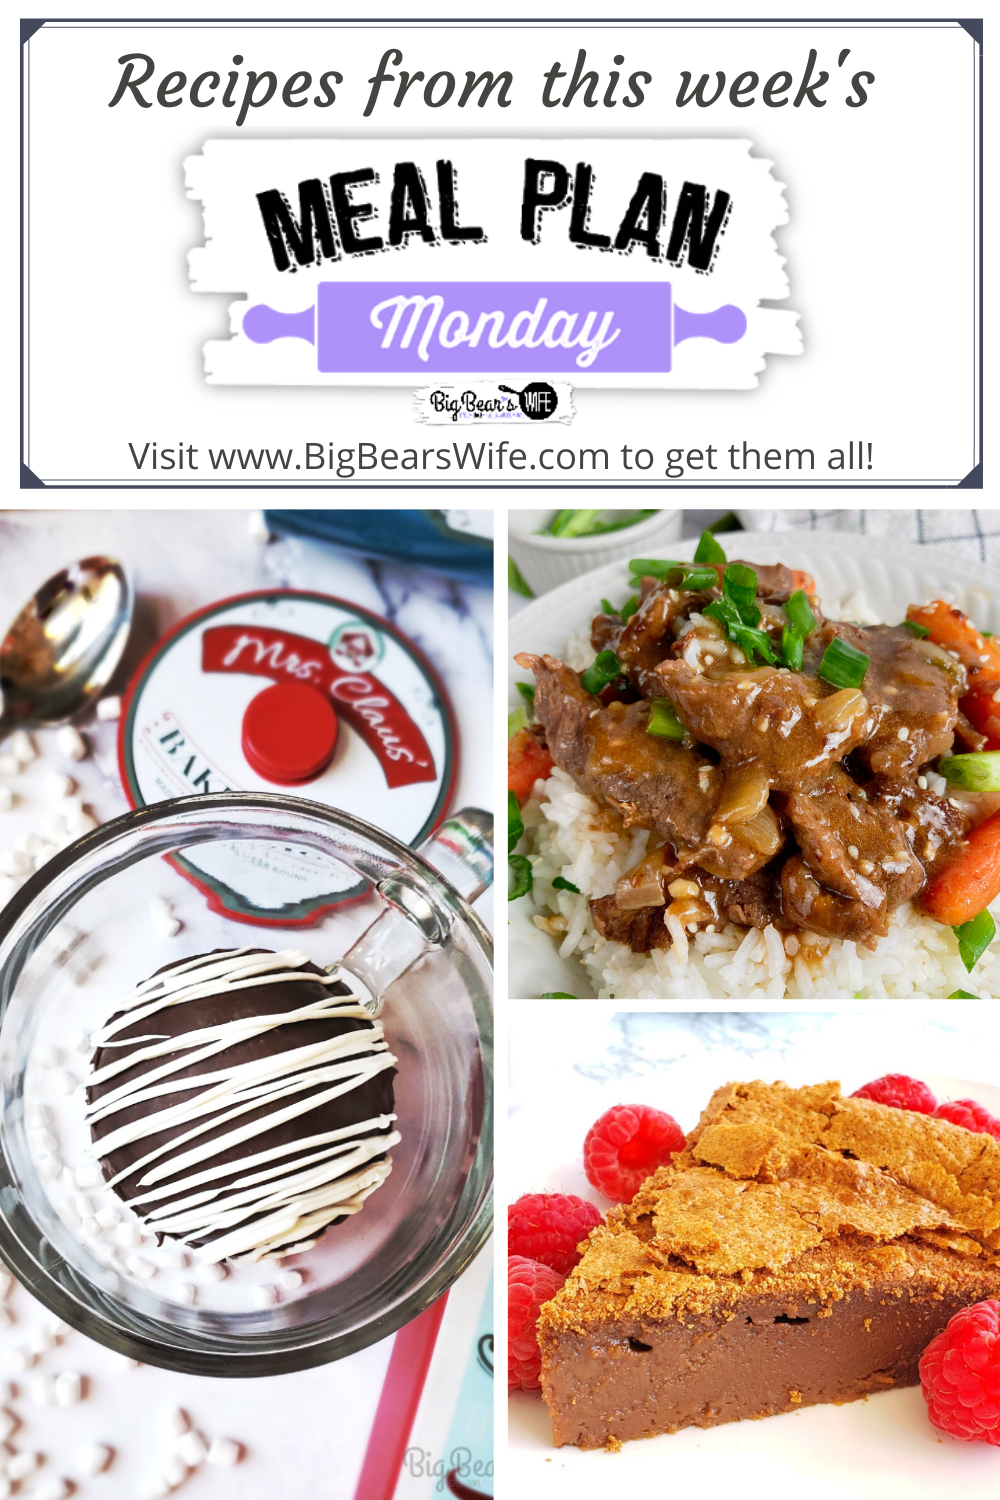 Meal Plan Monday 240! We're sharing recipes for Better than Takeout Easy Mongolian Beef, The Best CRAZY Cheap and Easy Tomato Soup Recipe, Chocolate Impossible Pie, Hot Chocolate Bombs and many more! via @bigbearswife